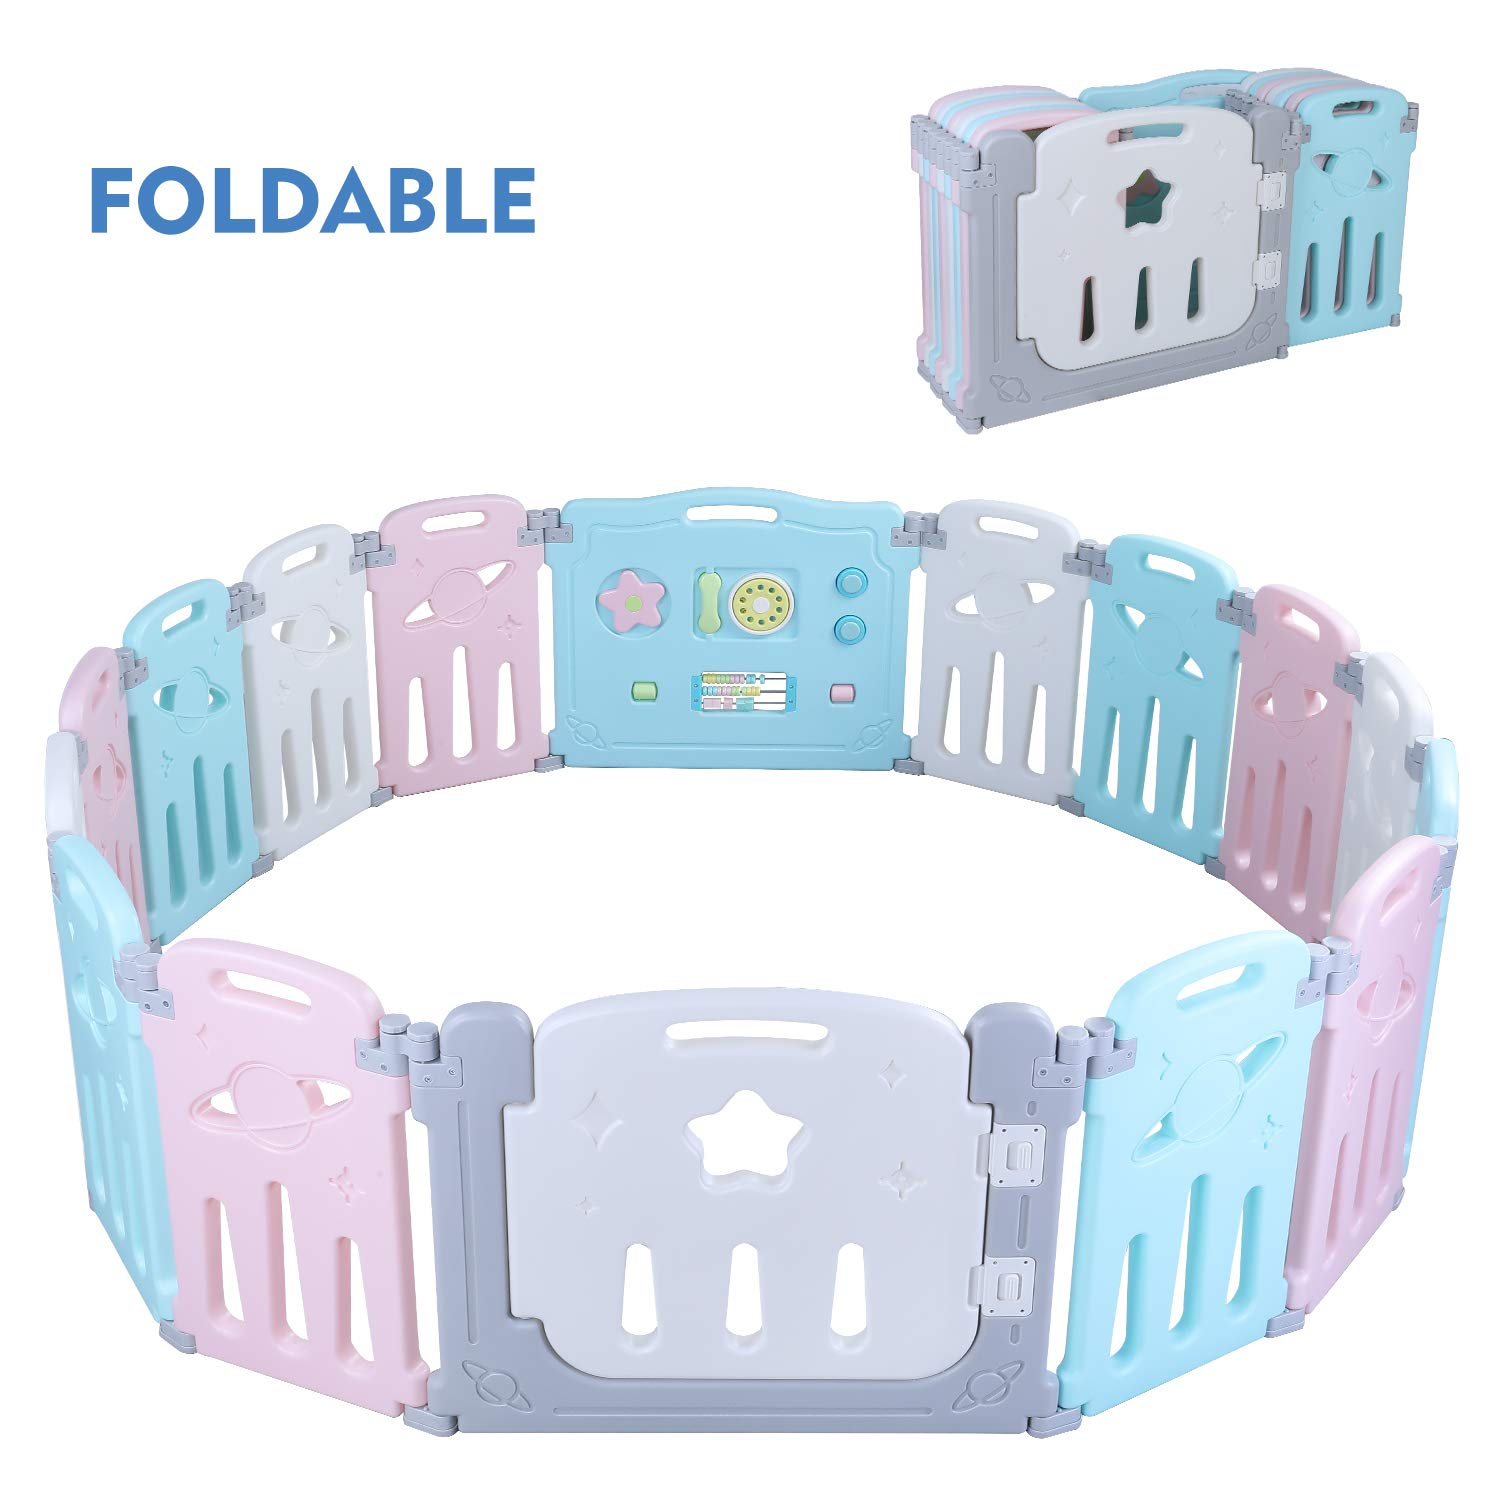 POTBY Star Pattern Foldable Baby Playpen 16 Panel Activity Center Safety Playard, One-Click Folding, Double Layer Clasp and Anti-Slip Base Kid s Fence Indoor Outdoor for Children 10 Months 6 Years Old